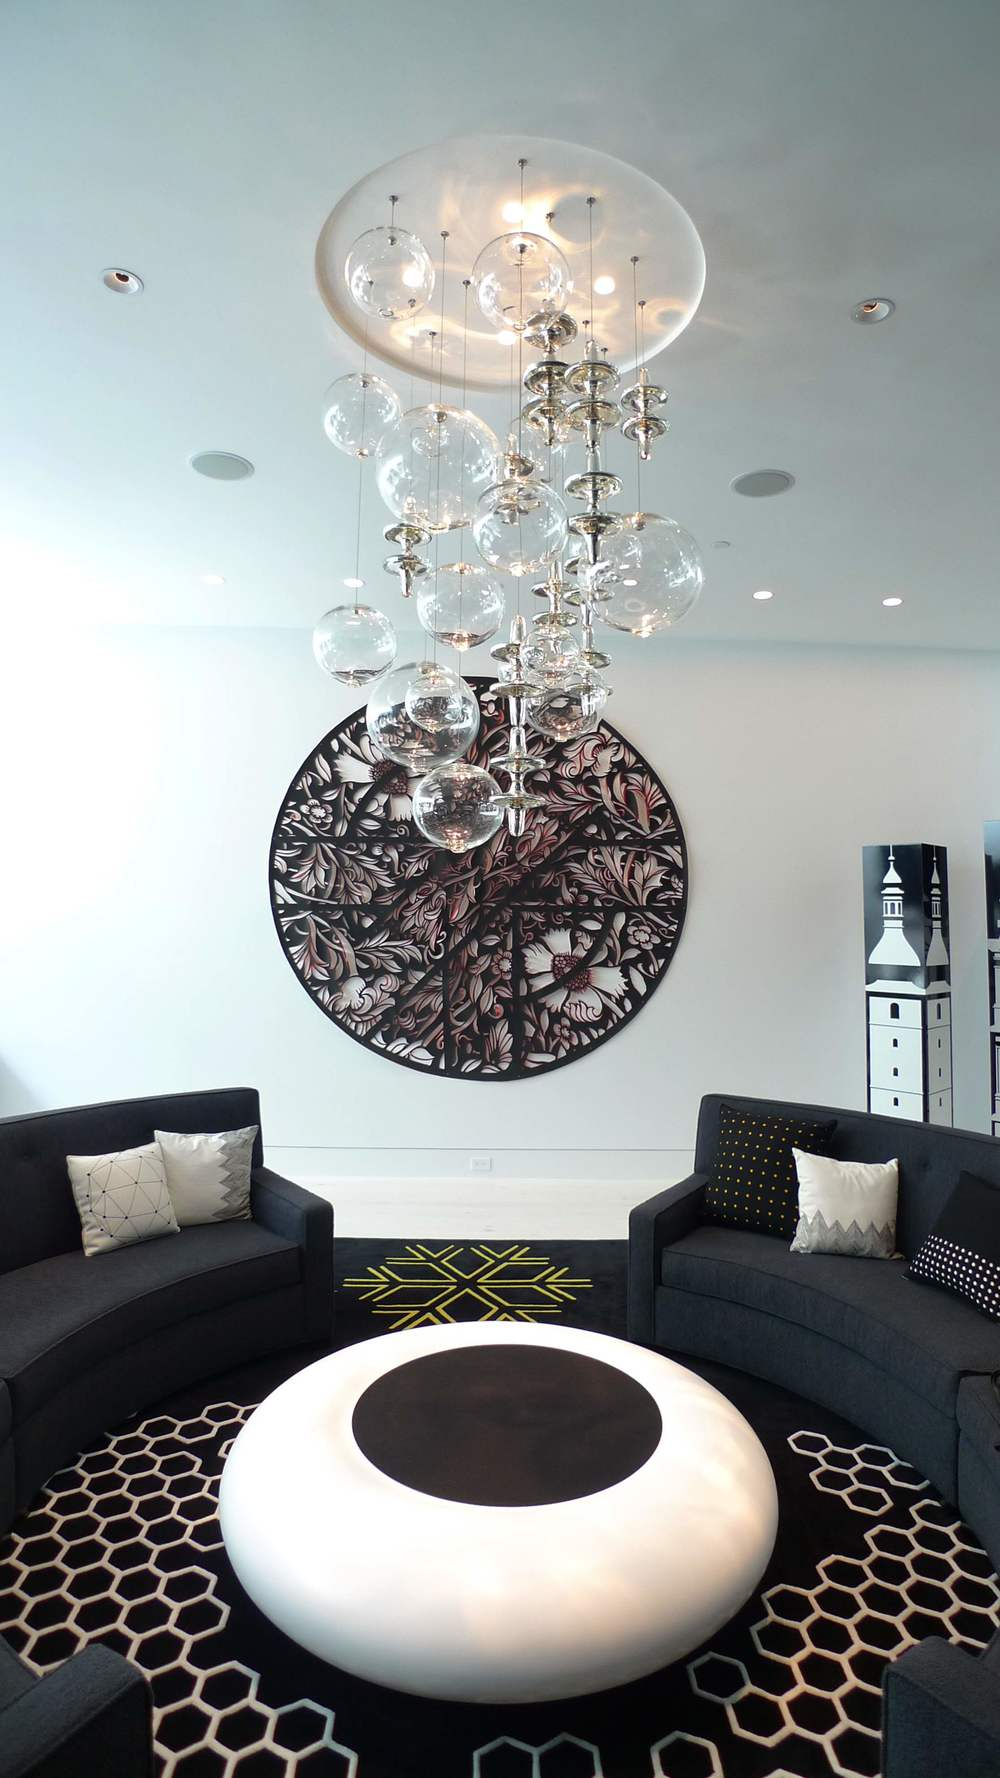 SEI_studio_Paige_West_full+Chandelier.jpg